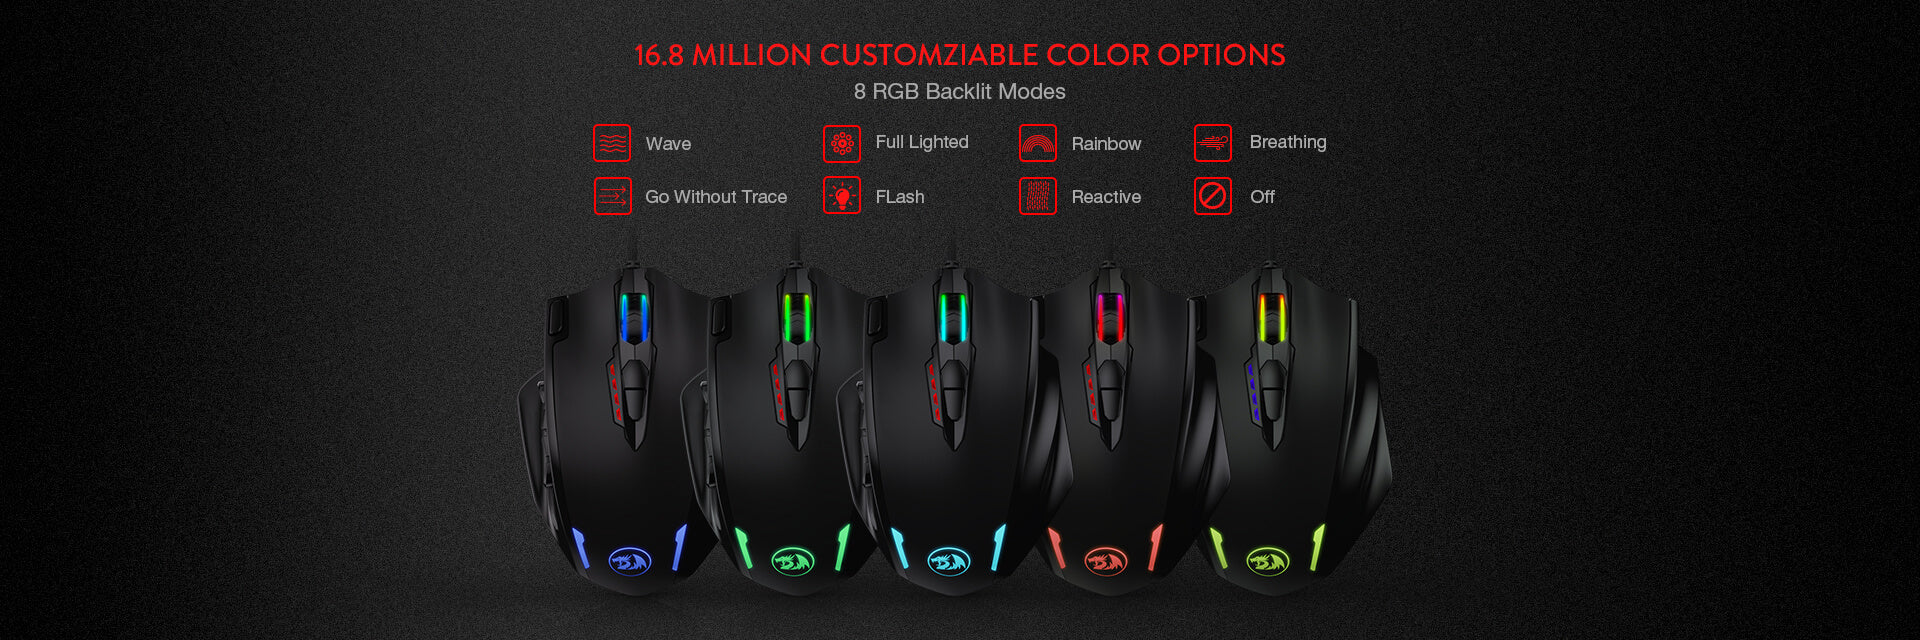 redragon m908 gaming mouse